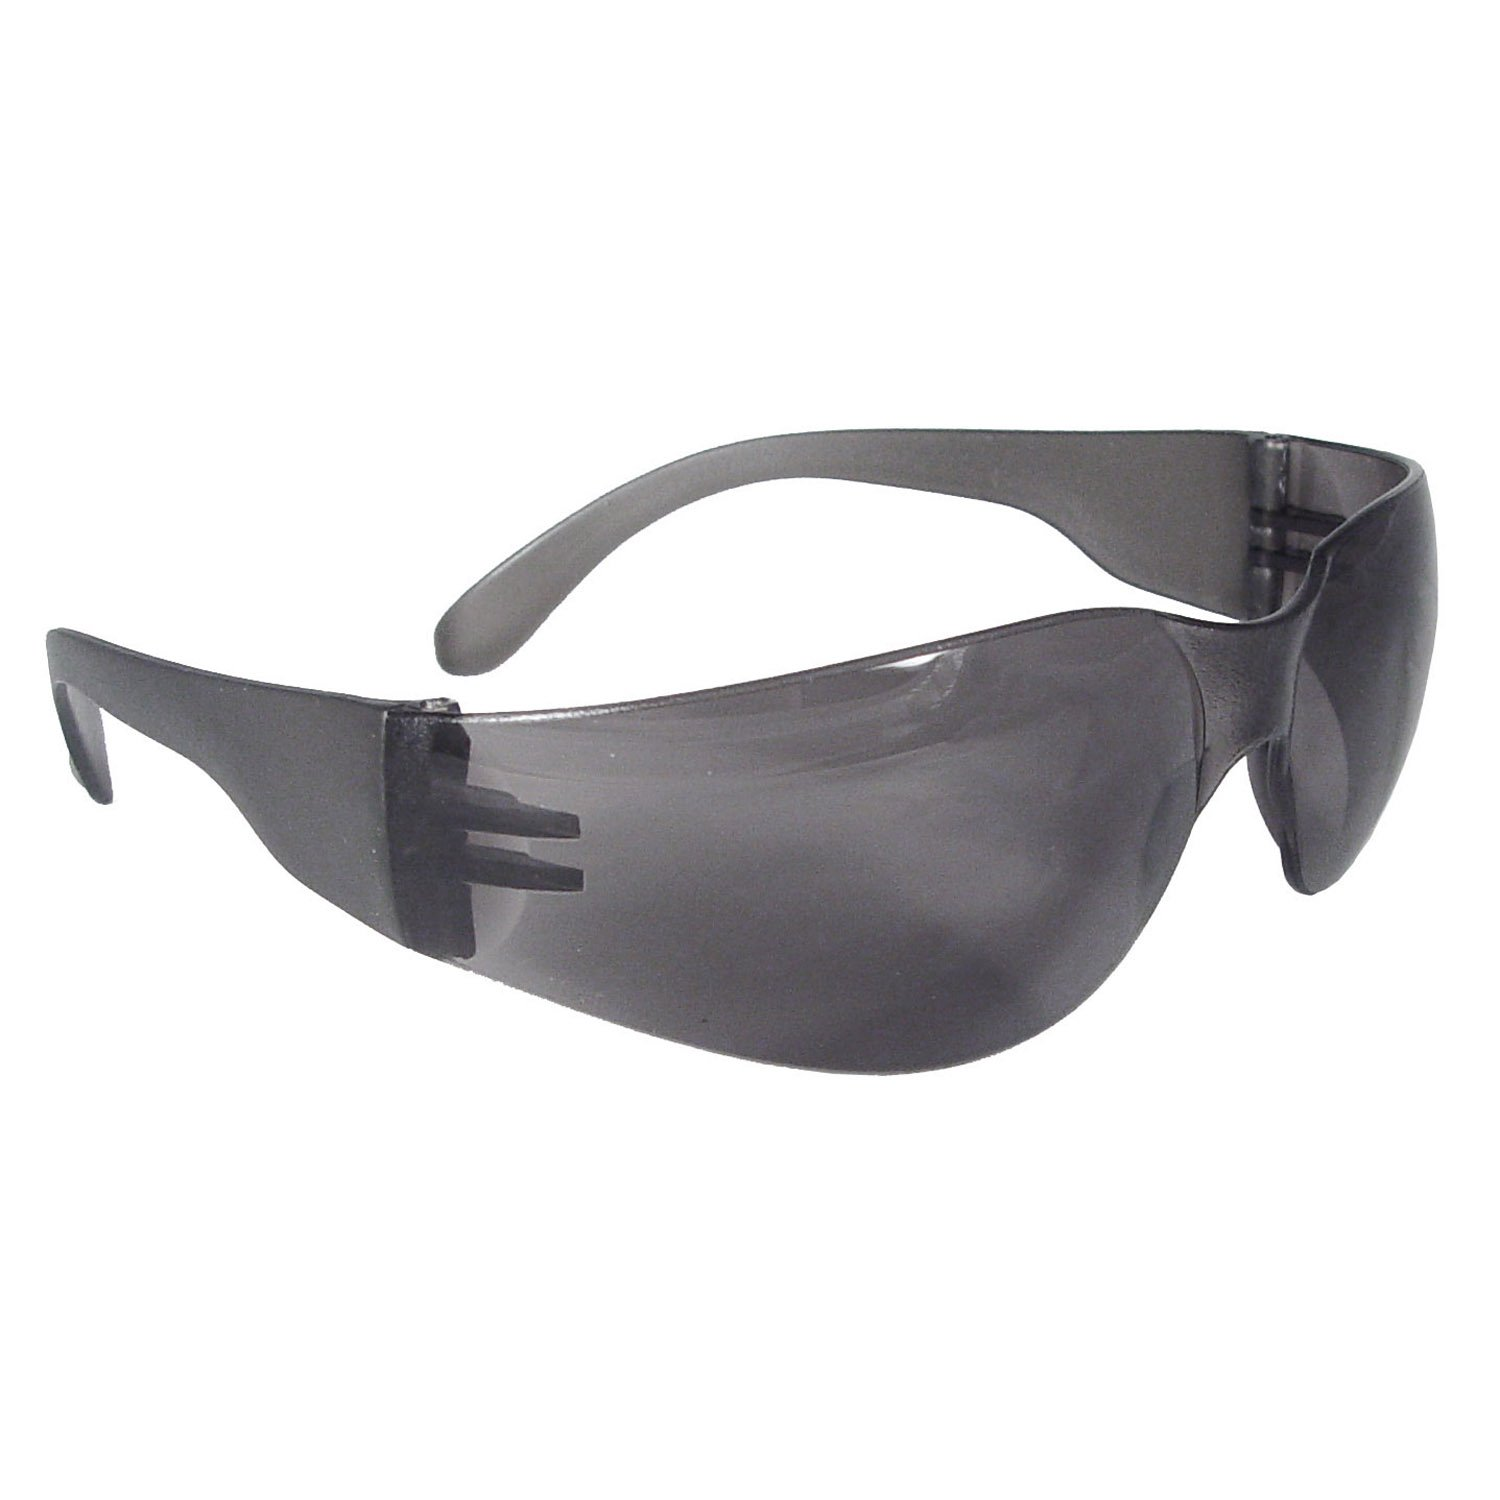 100 Series Safety Glasses